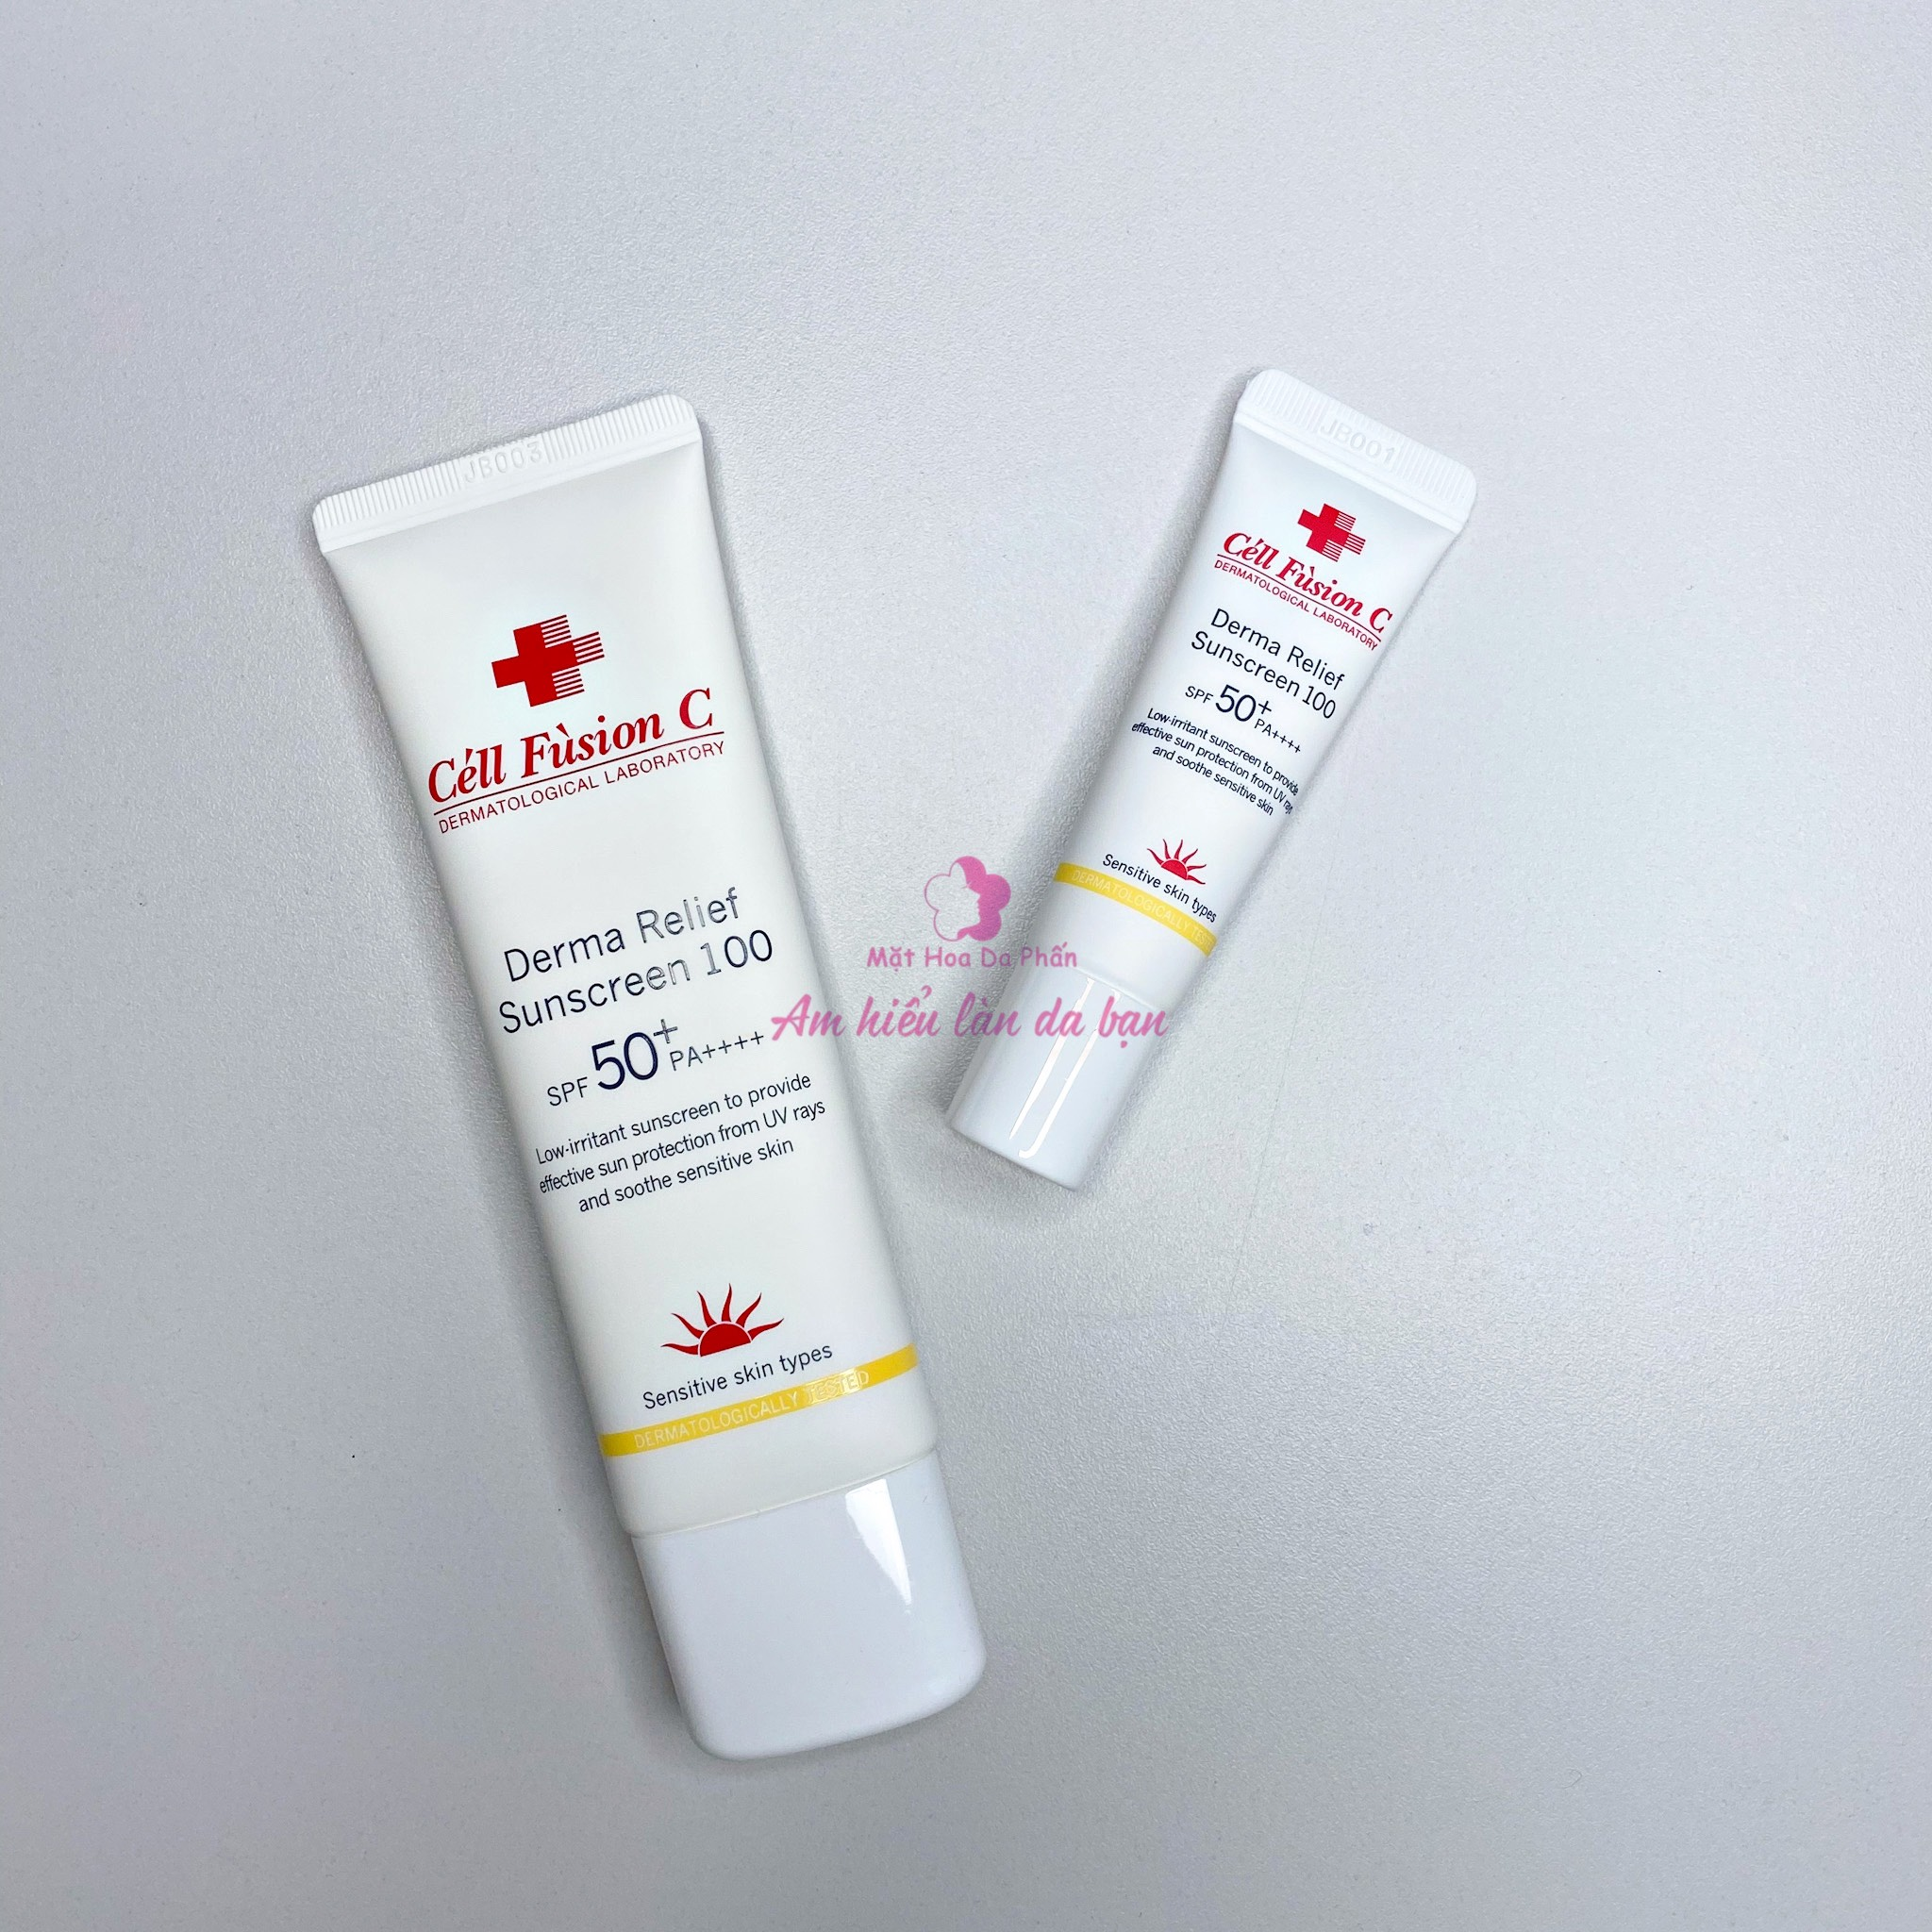 Kem Chống Nắng Nâng Tone Cell Fusion C Derma Relief Sunscreen 100 10ml (hộp)